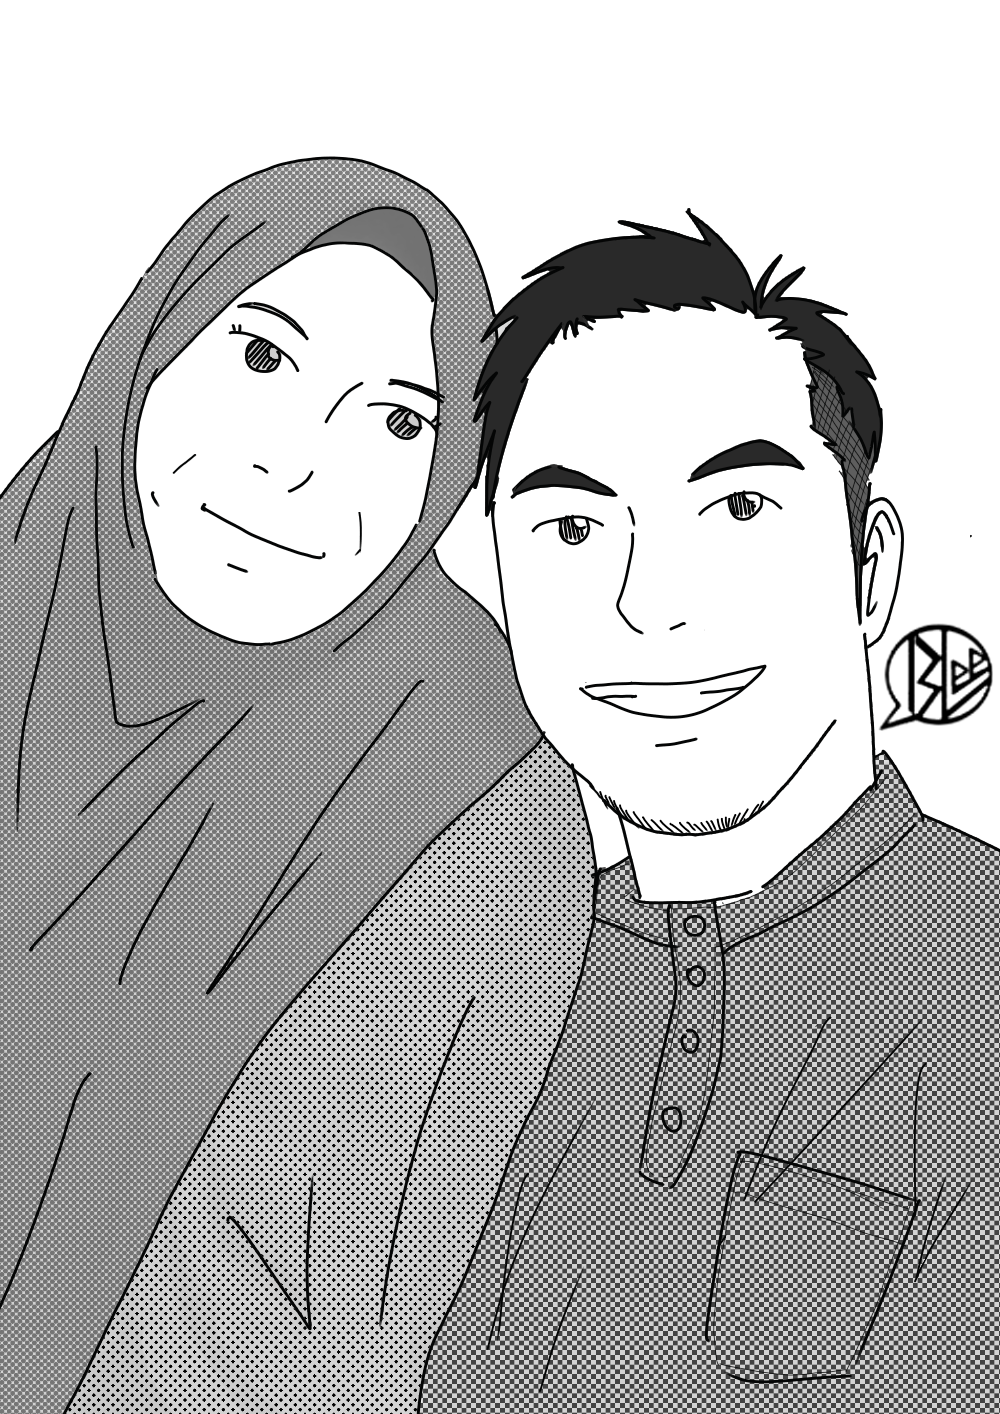 my friend and his mom